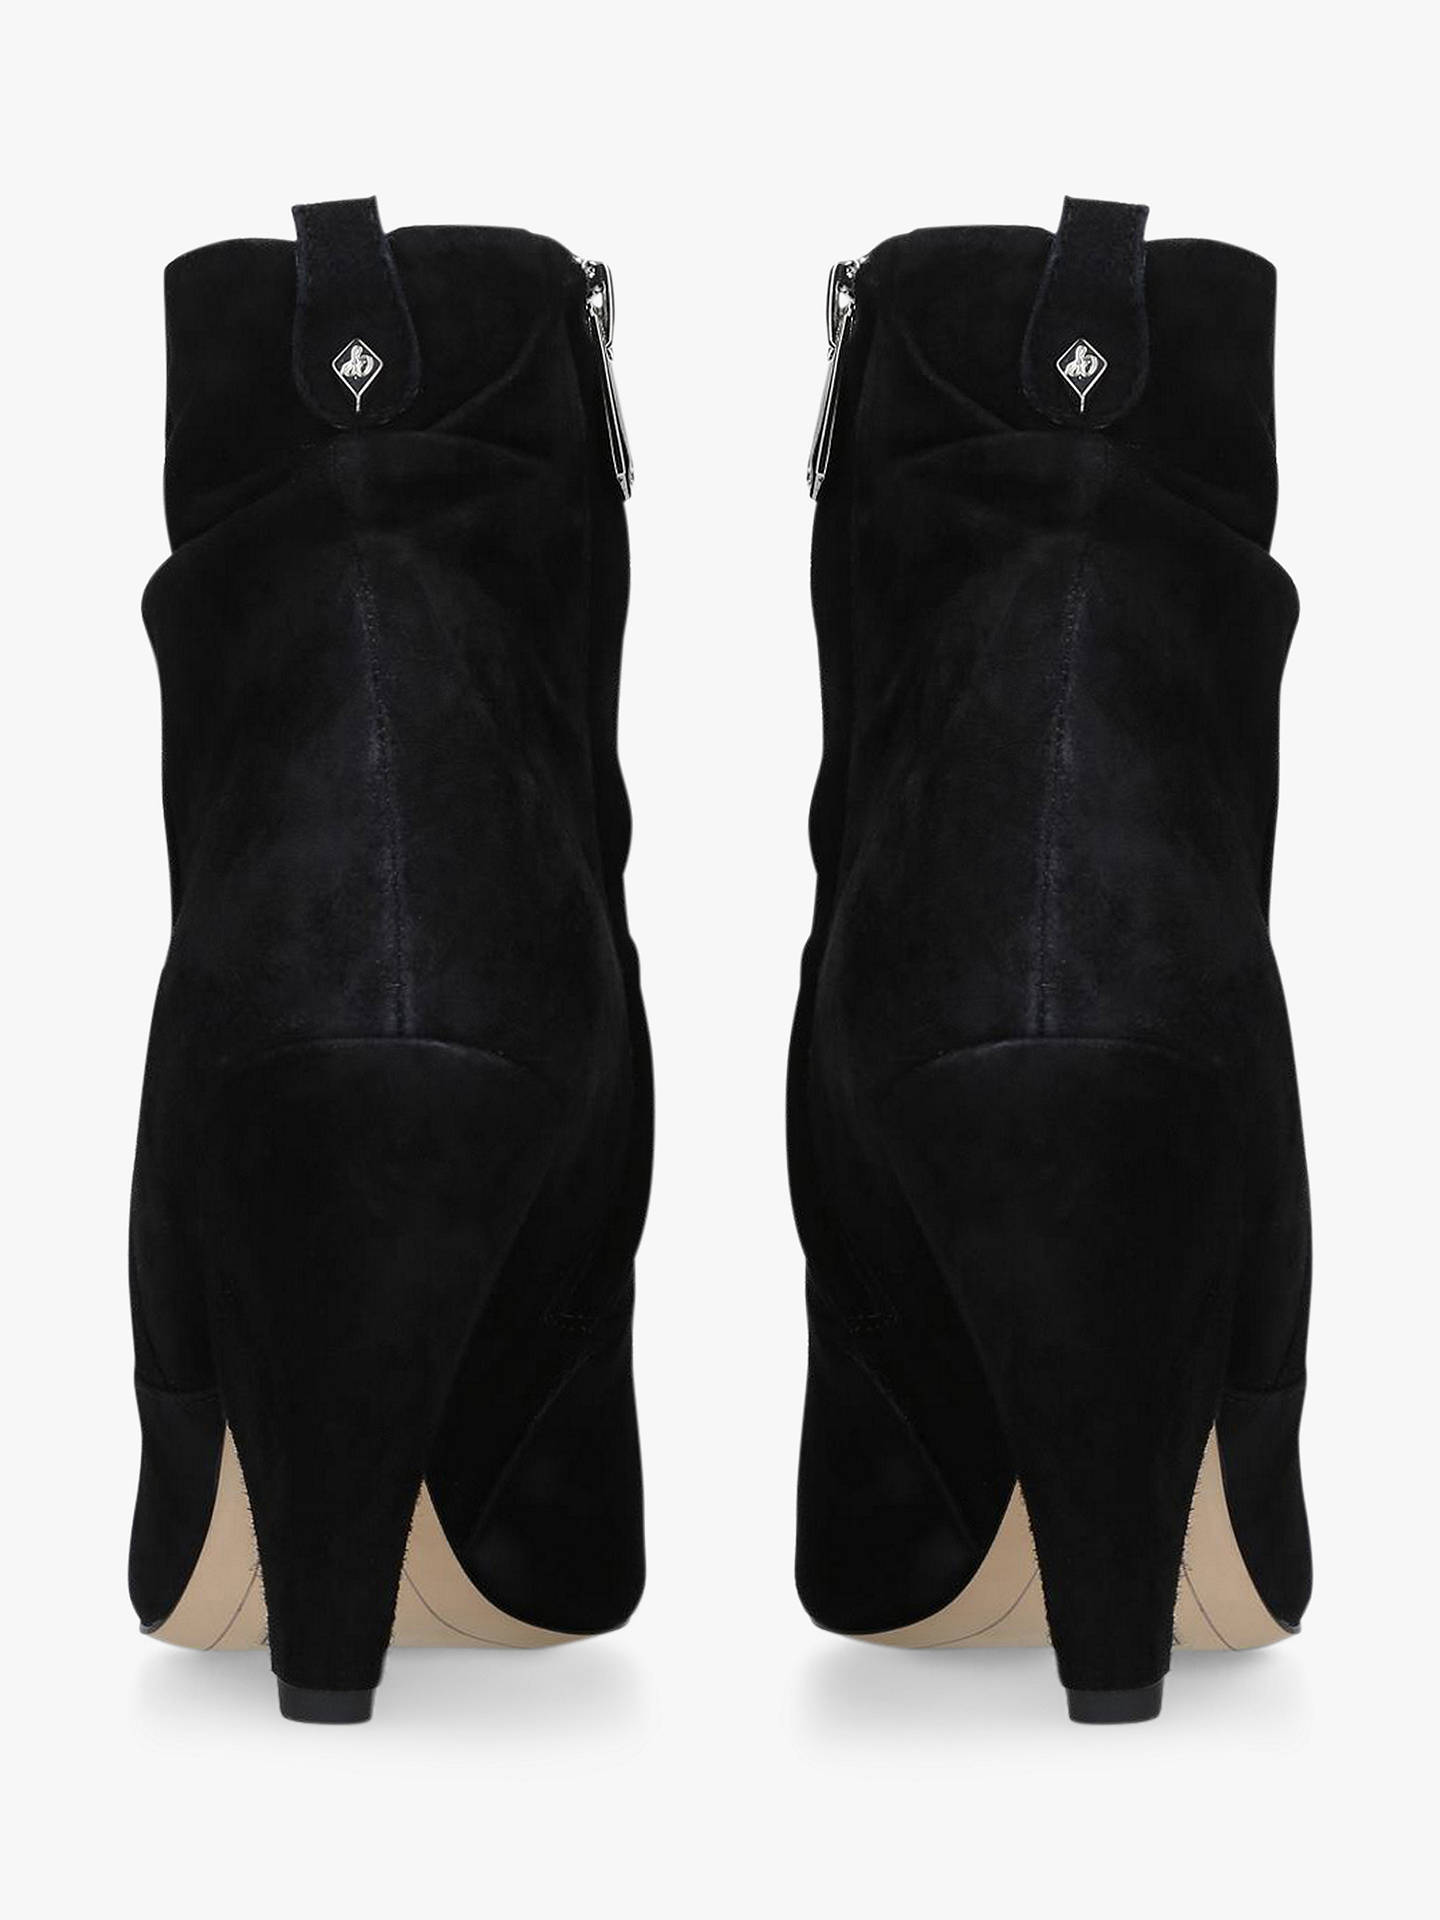 e721be78beb4d3 ... Buy Sam Edelman Roden High Cone Heel Ankle Boots